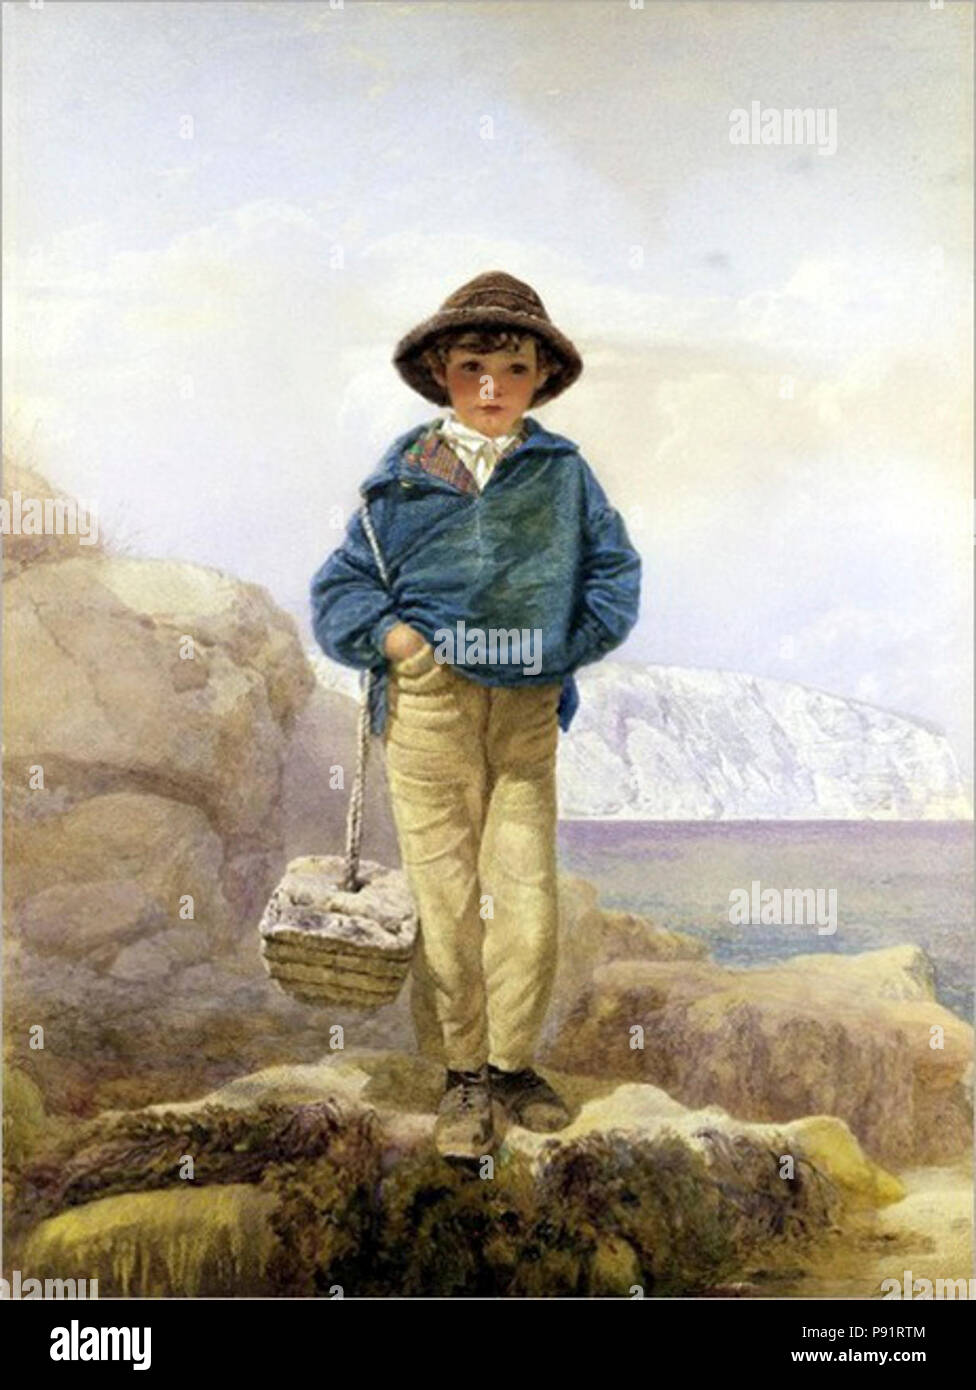 A Fisher Boy by Alfred Downing Fripp. - Stock Image